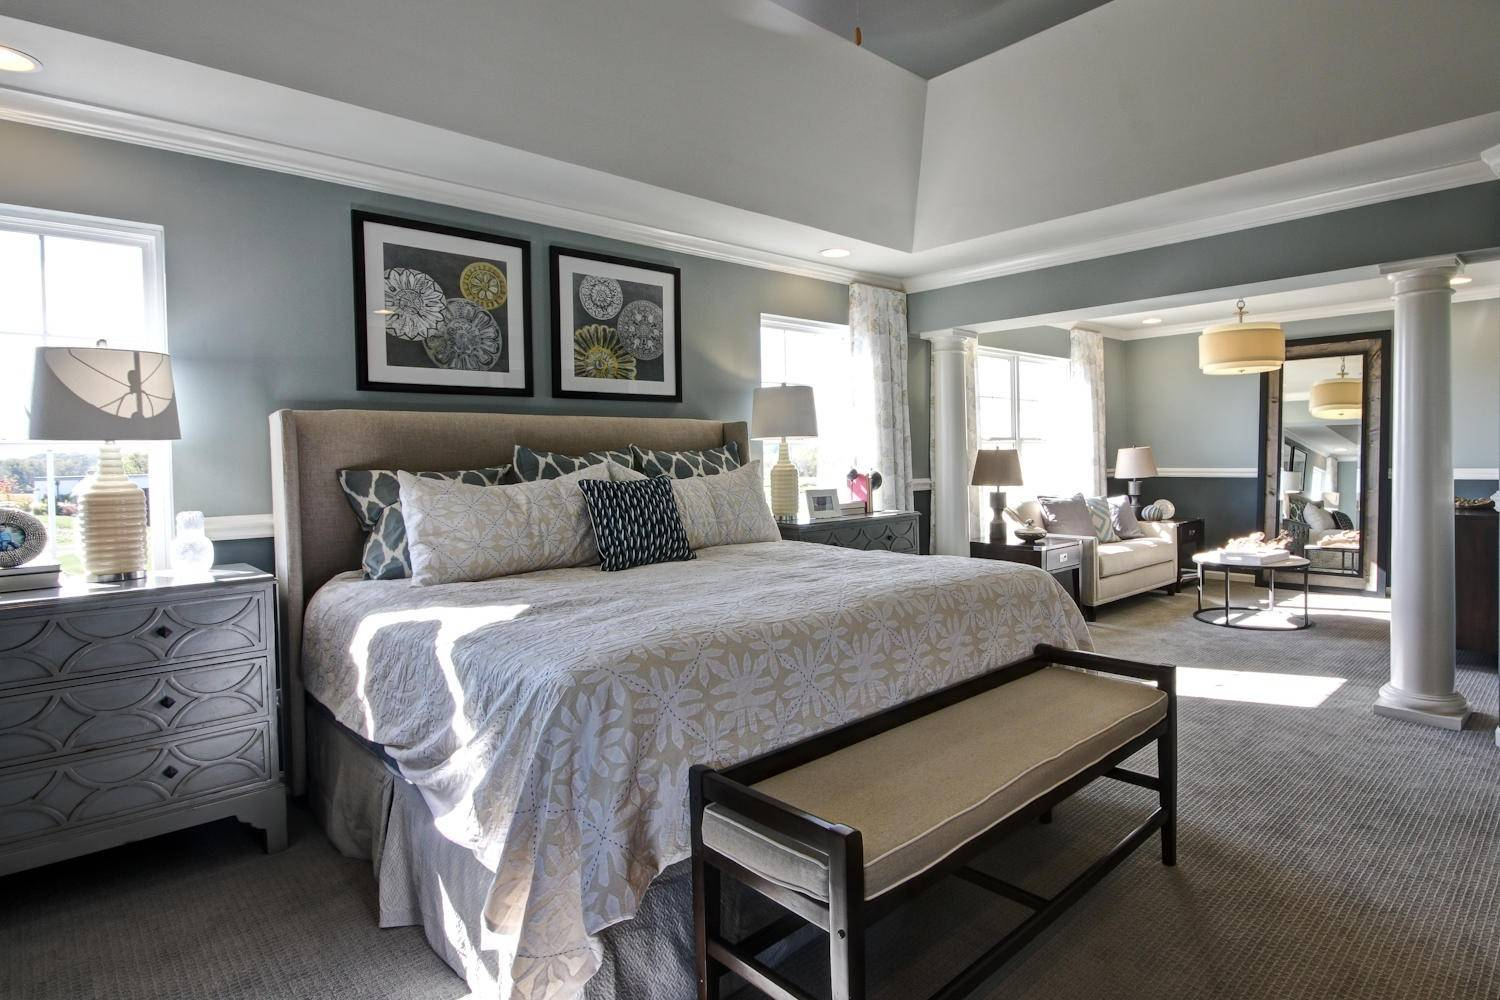 In the Harvard model at Bowes Creek, the master suite features architectural columns that separate the sleeping and sitting areas.